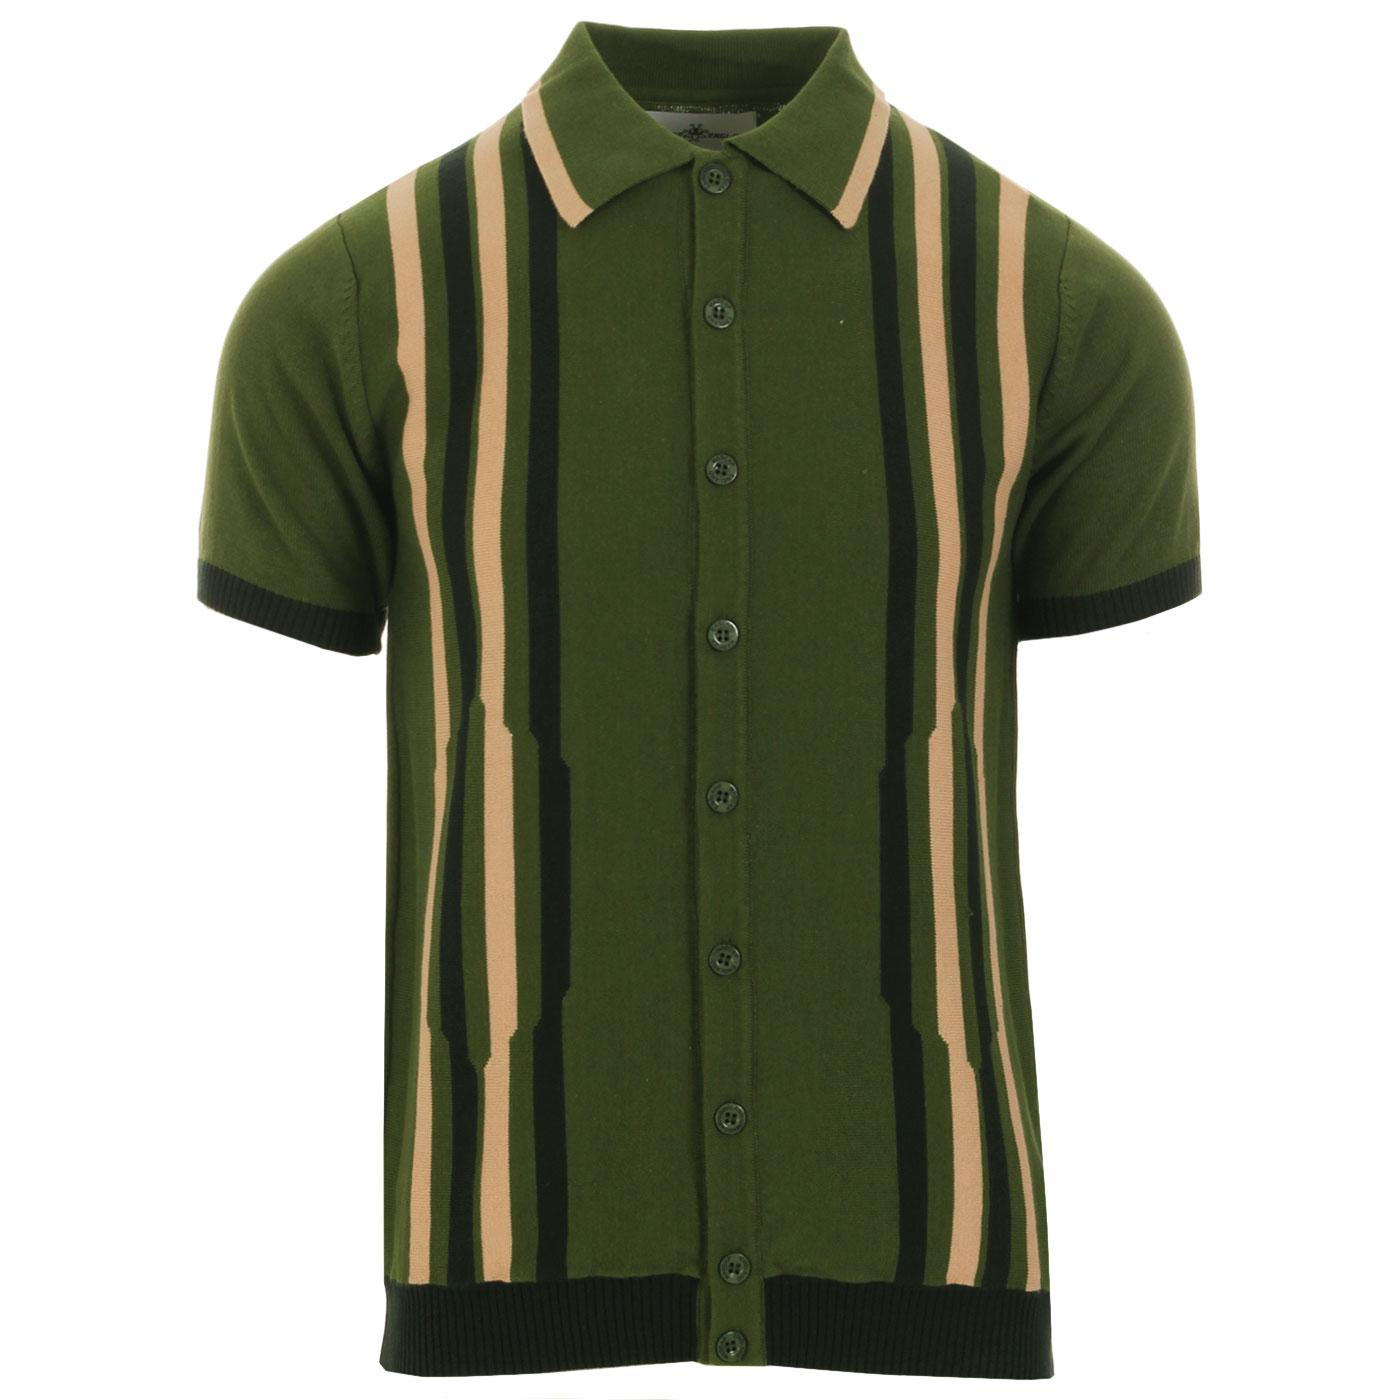 Shockwave MADCAP ENGLAND Mod Stripe Knit Polo (CG)